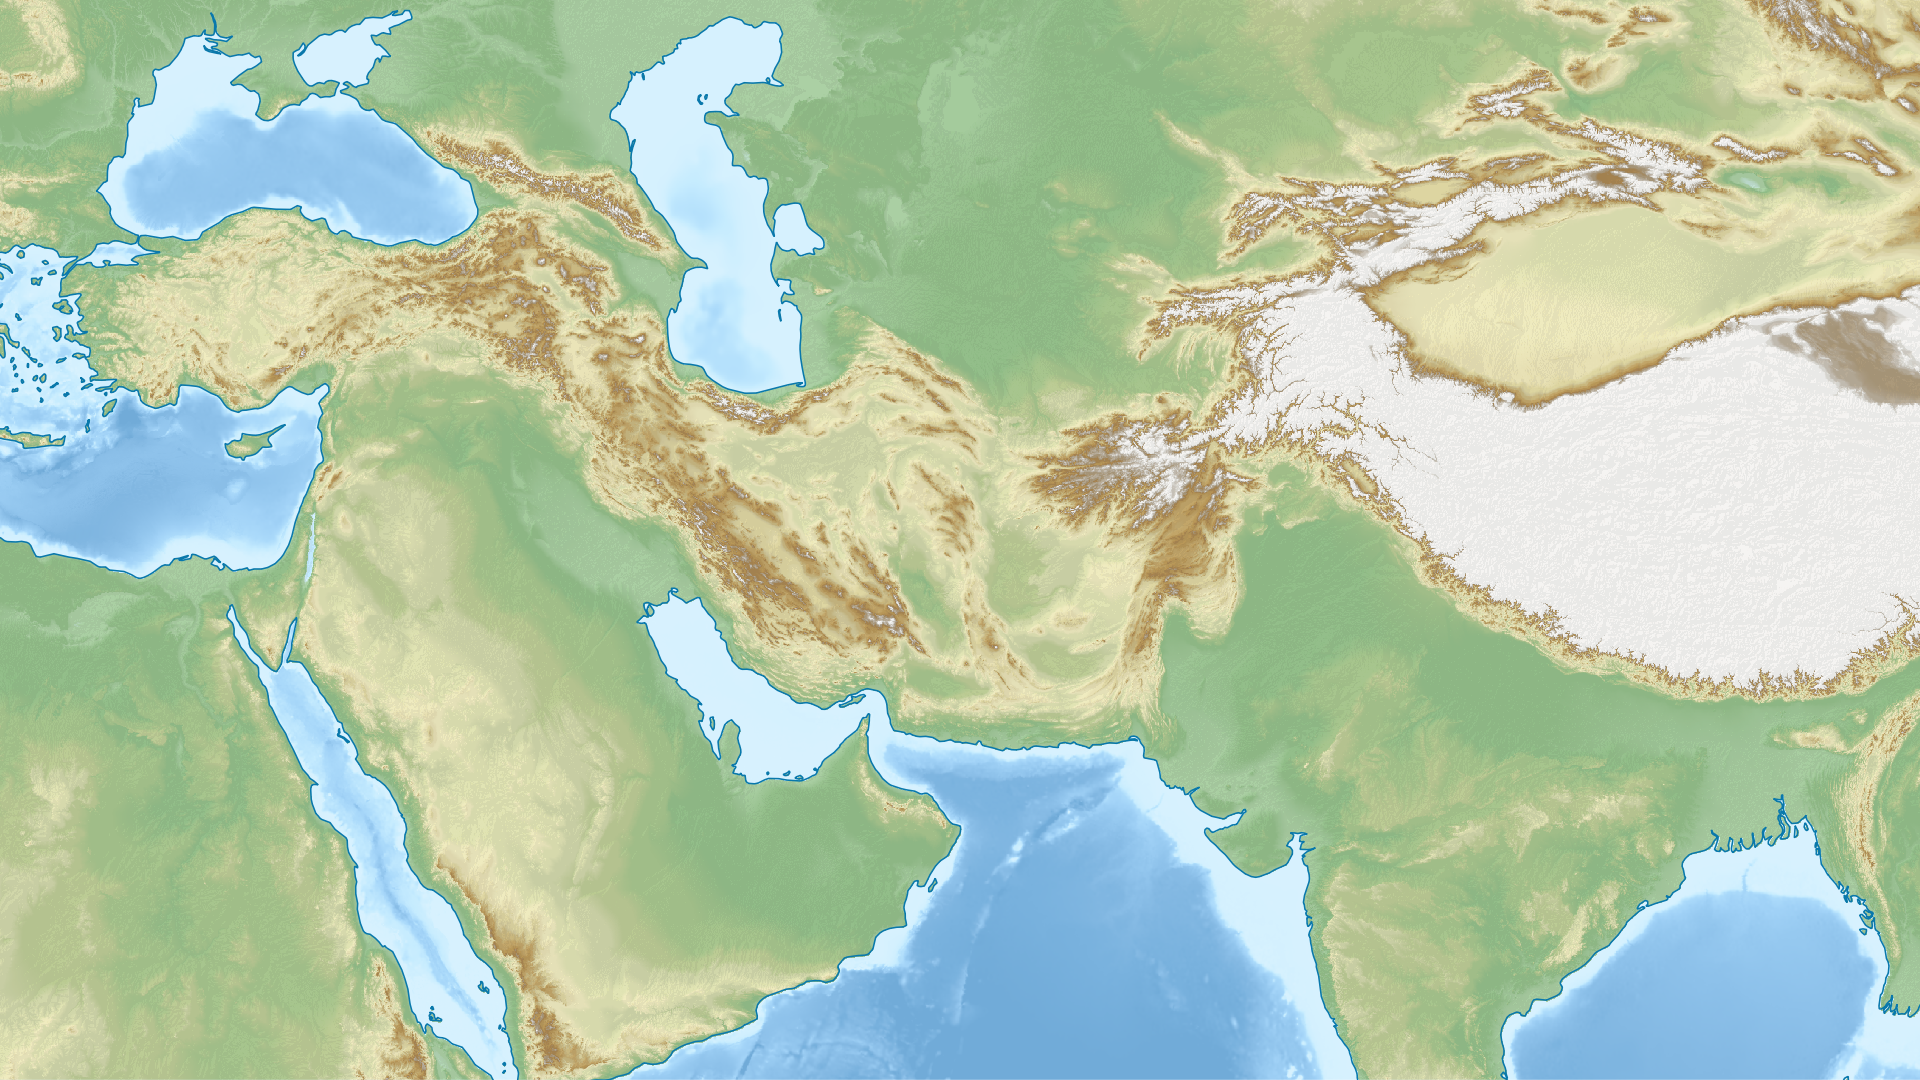 FileMiddle East topographic mappng Wikimedia Commons